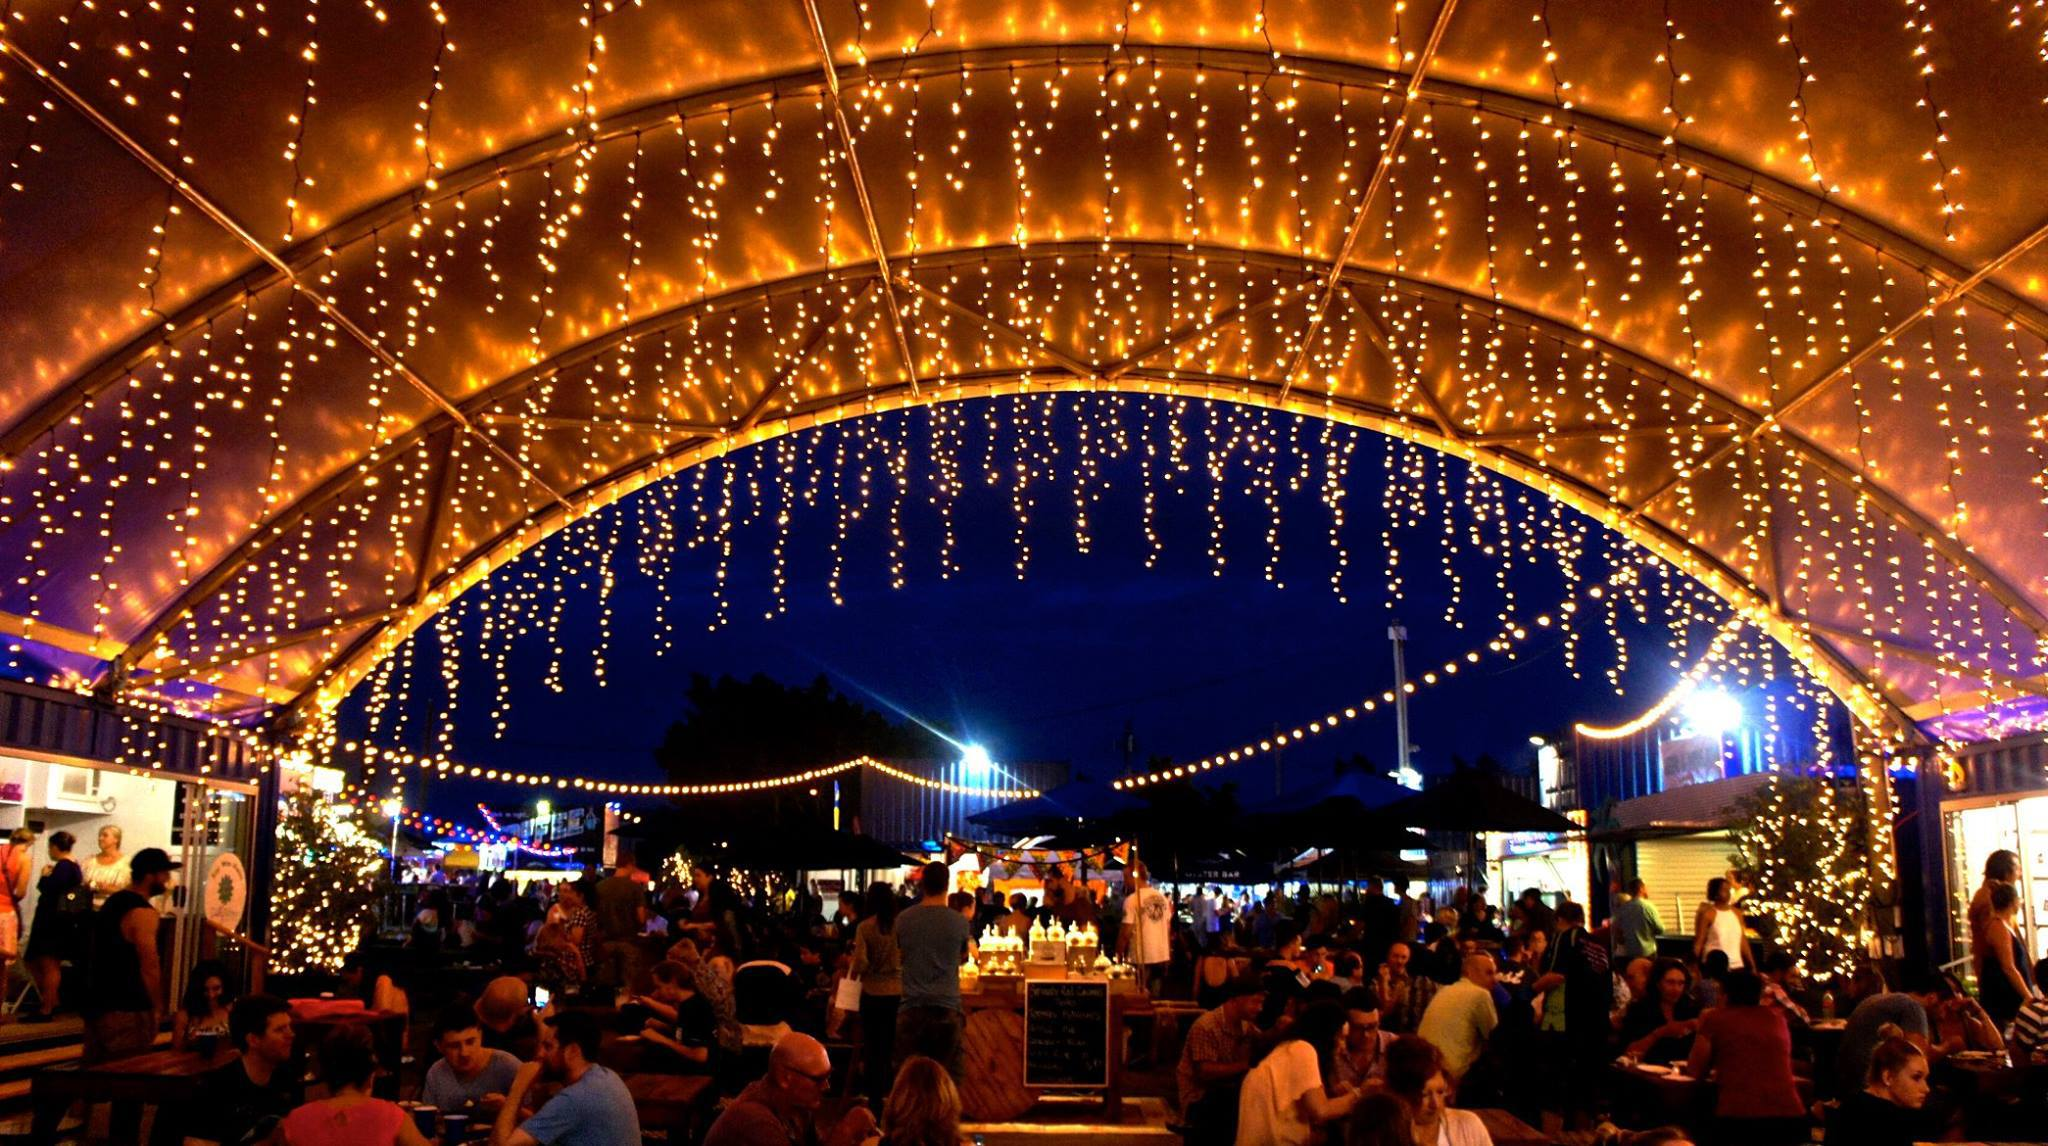 Dallas market dates in Brisbane